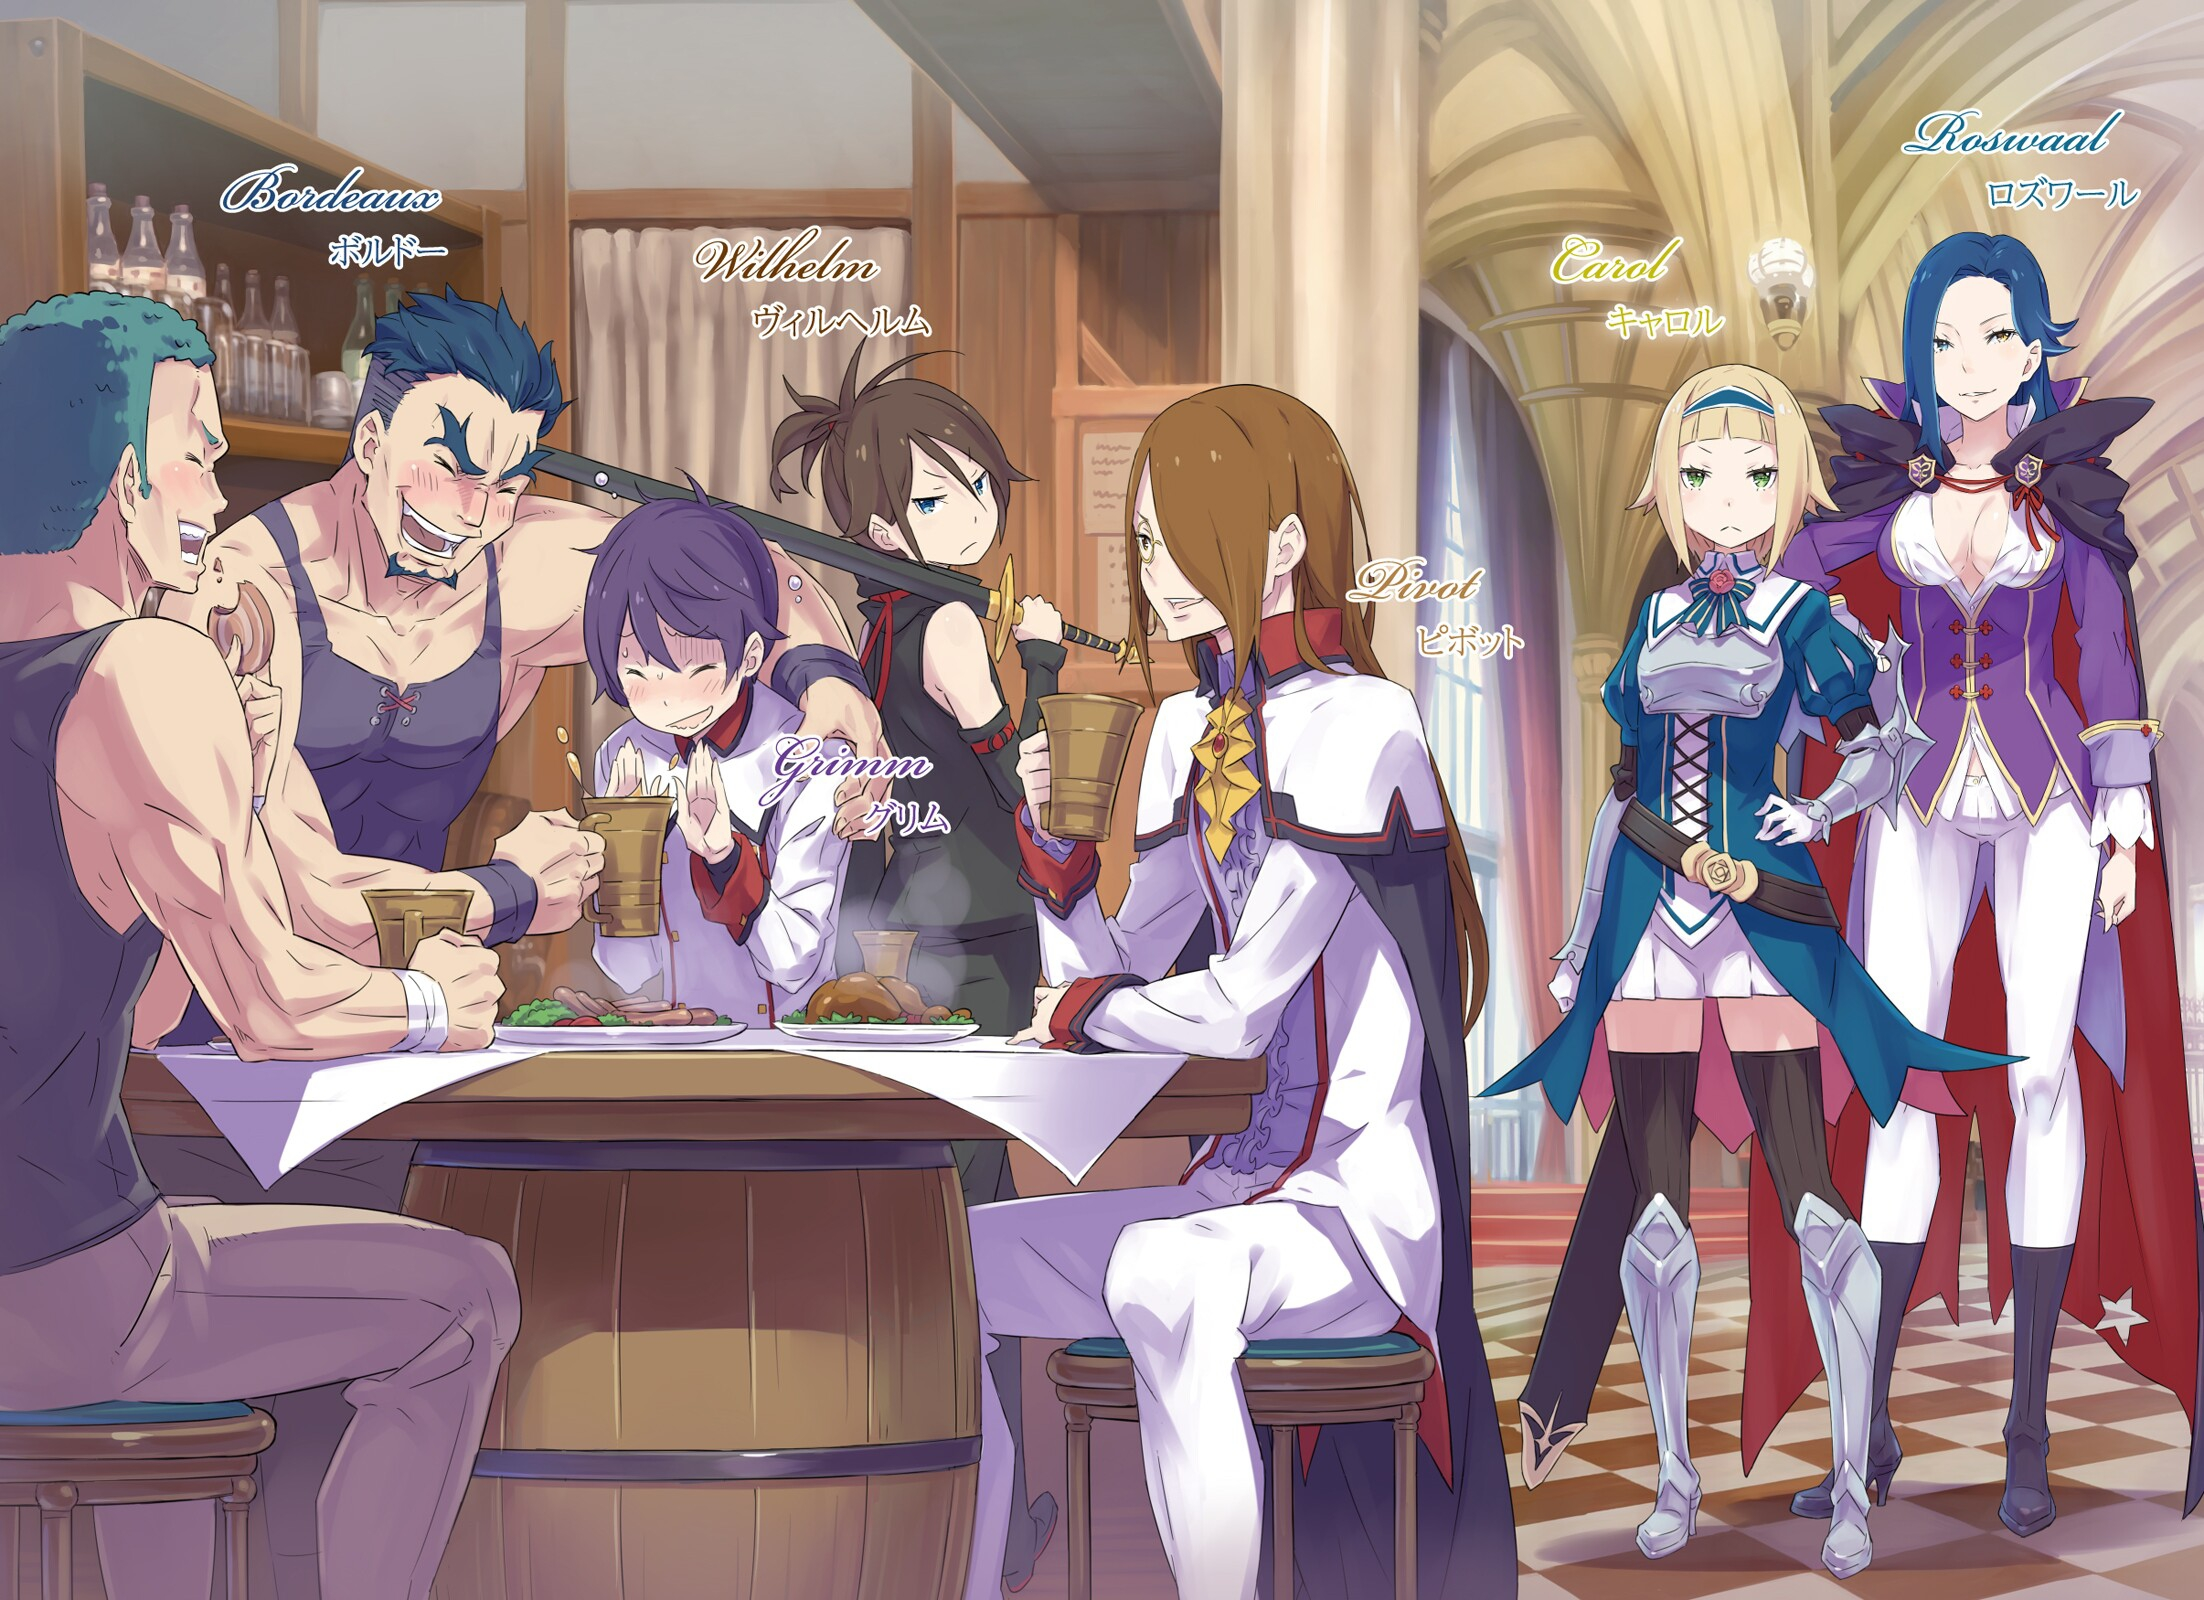 __bordeaux_carol_grimm_pivot_roswaal_l_mathers_and_others_re_zero_kara_hajimeru_isekai_seikatsu_drawn_by_ootsuka_shin_ichirou__6bab42ebe4adb991a11f40abd27aaec2.jpg